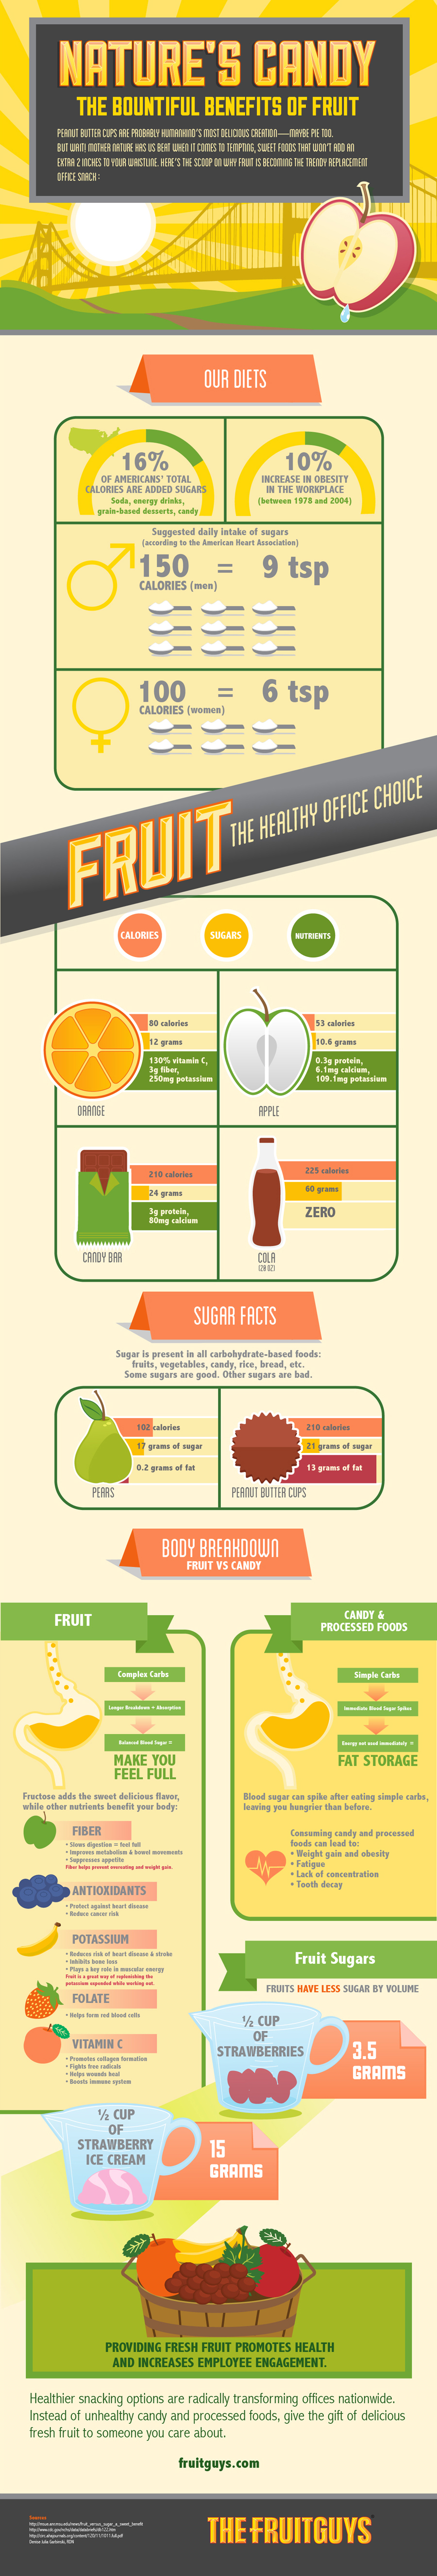 Fruits: Nature's Healthy Sugar - Infographic